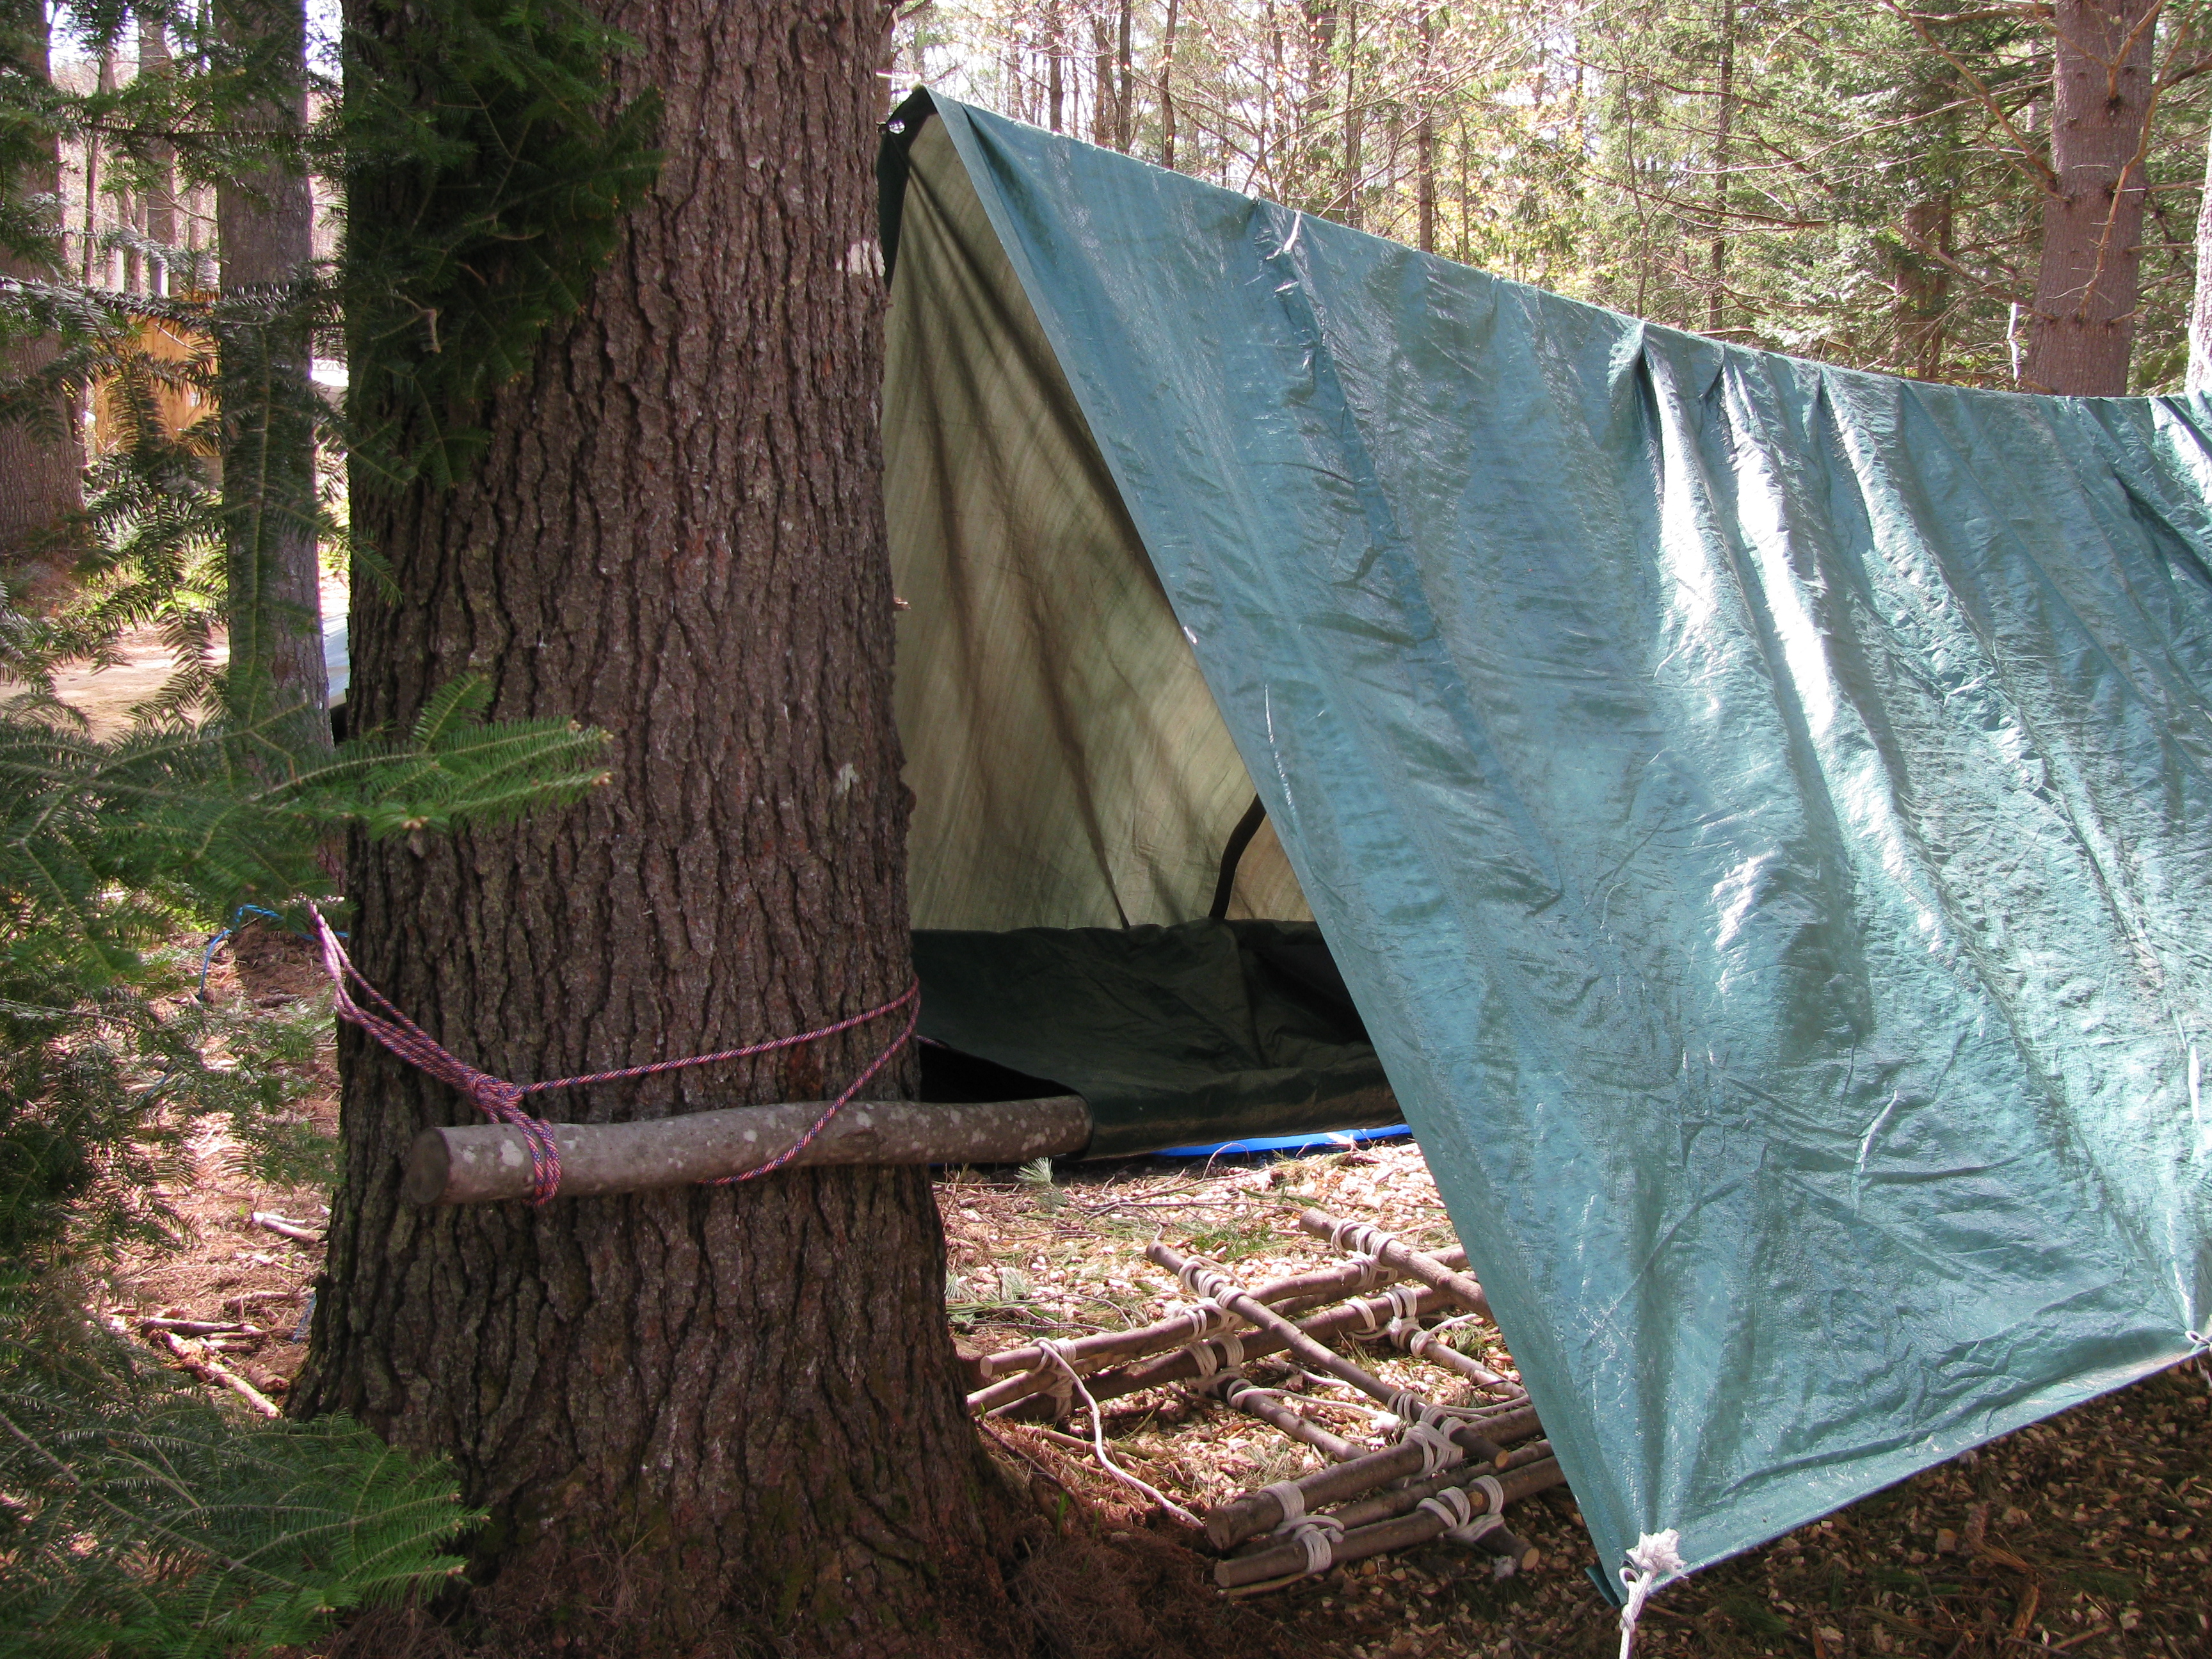 FilePole tarp and rope shelter 4855.JPG & File:Pole tarp and rope shelter 4855.JPG - Wikimedia Commons